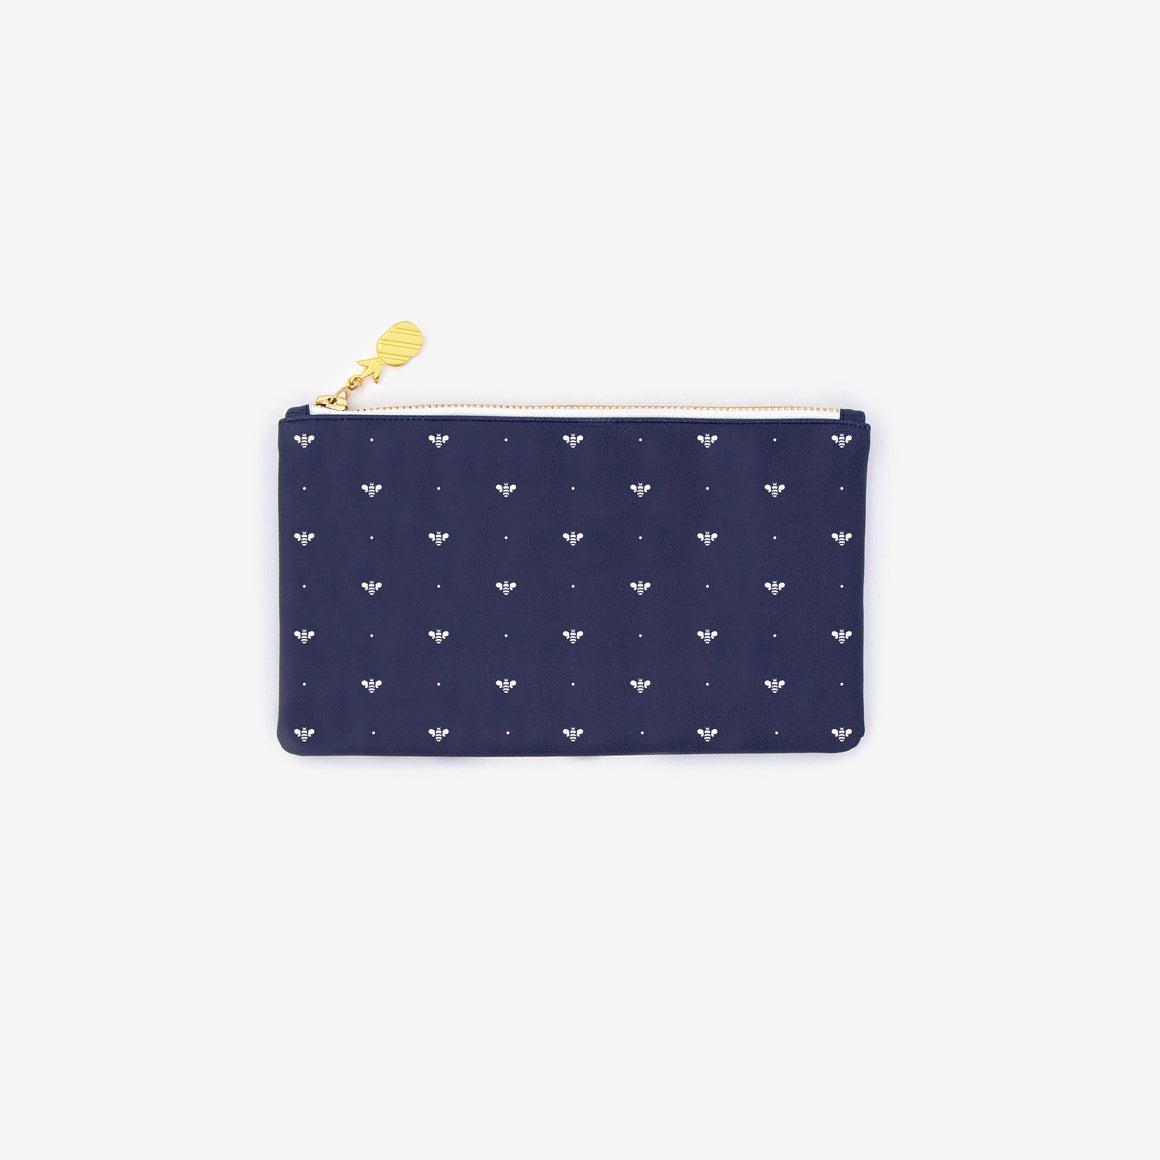 featured: NAVY BEE PENCIL POUCH